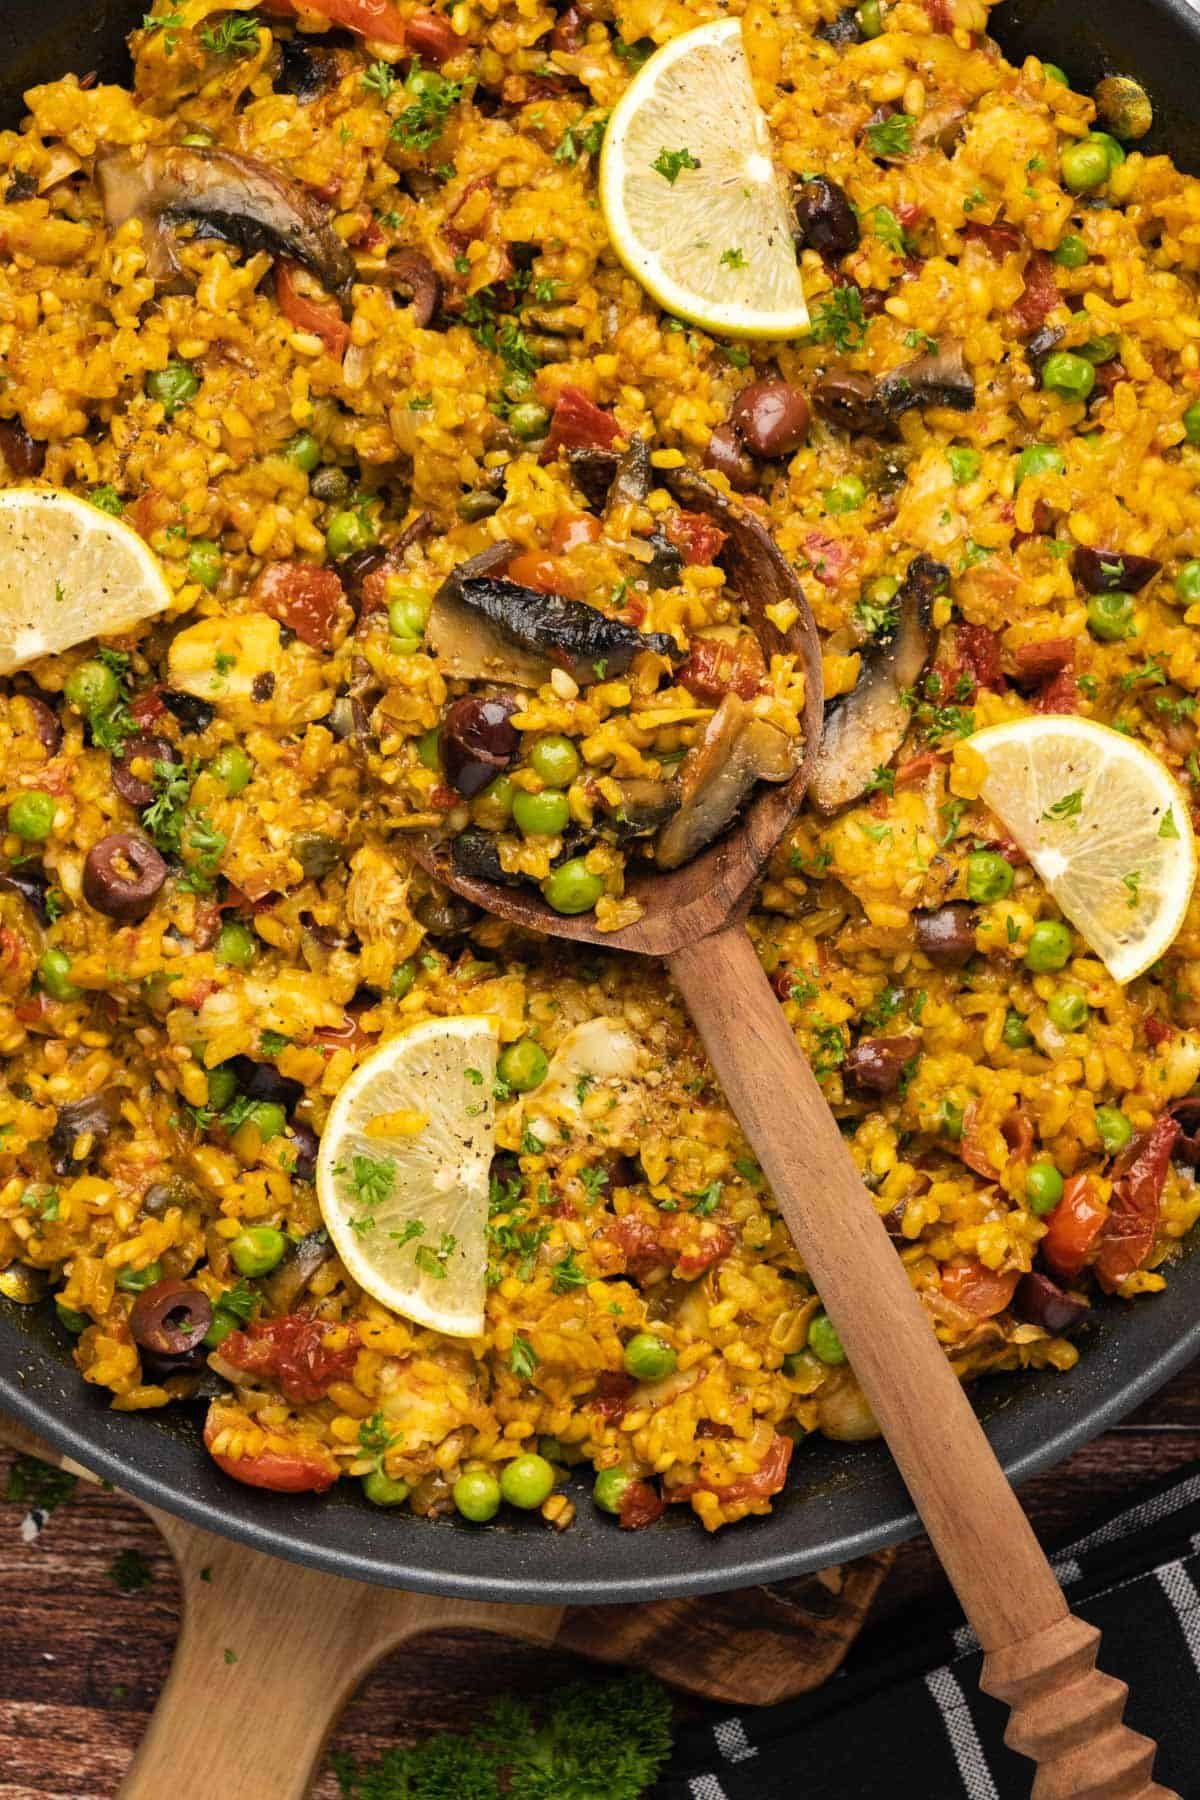 Vegetarian paella in a black paella pan with a wooden serving spoon.